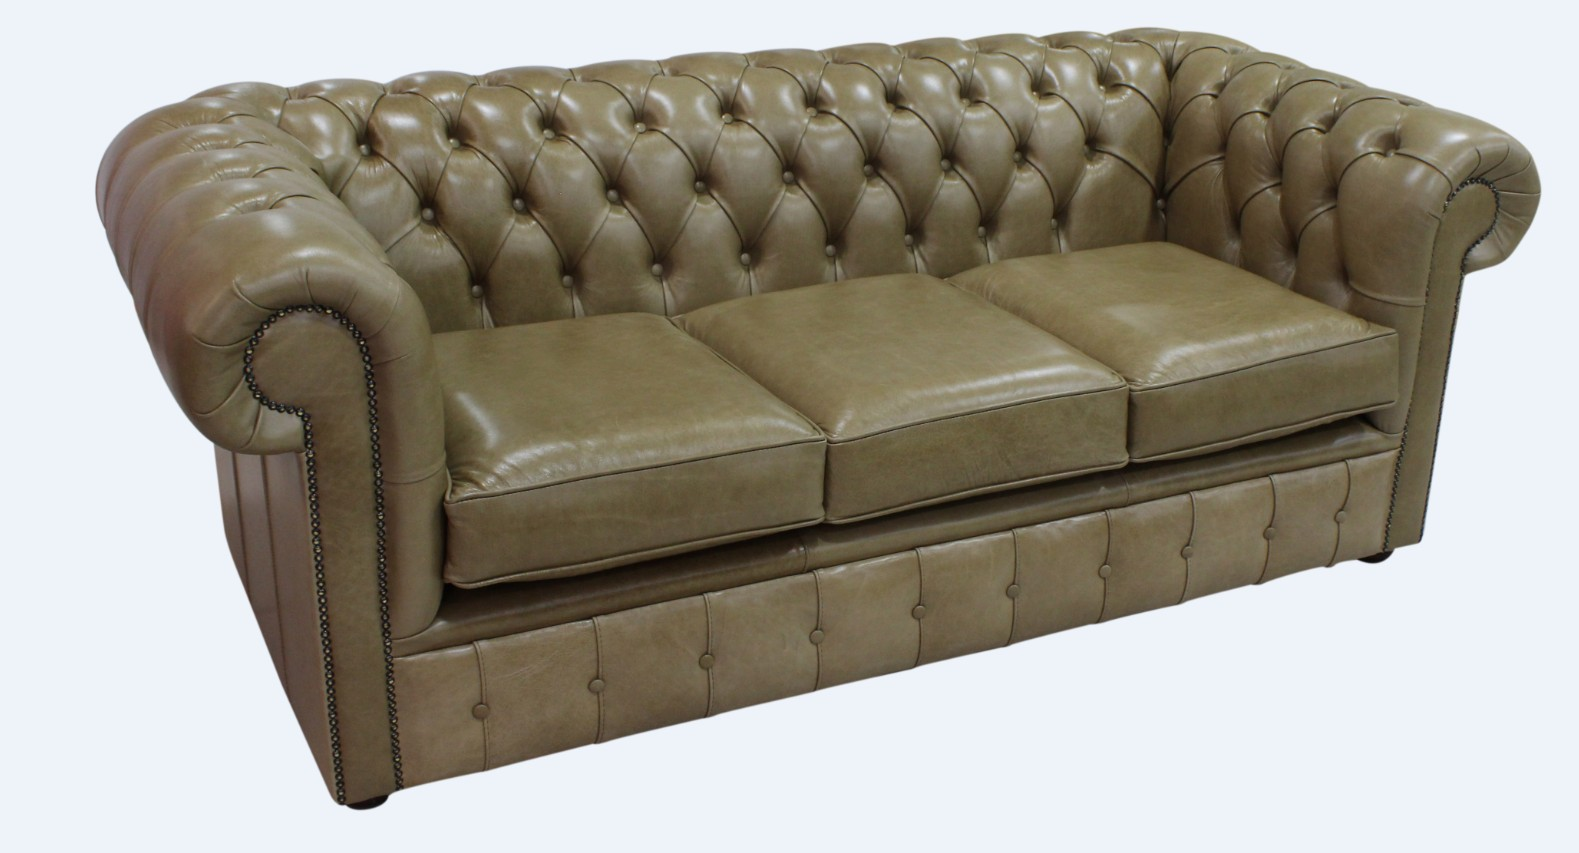 Sand Chesterfield 3 Seater Settee Sofa Designersofas4u